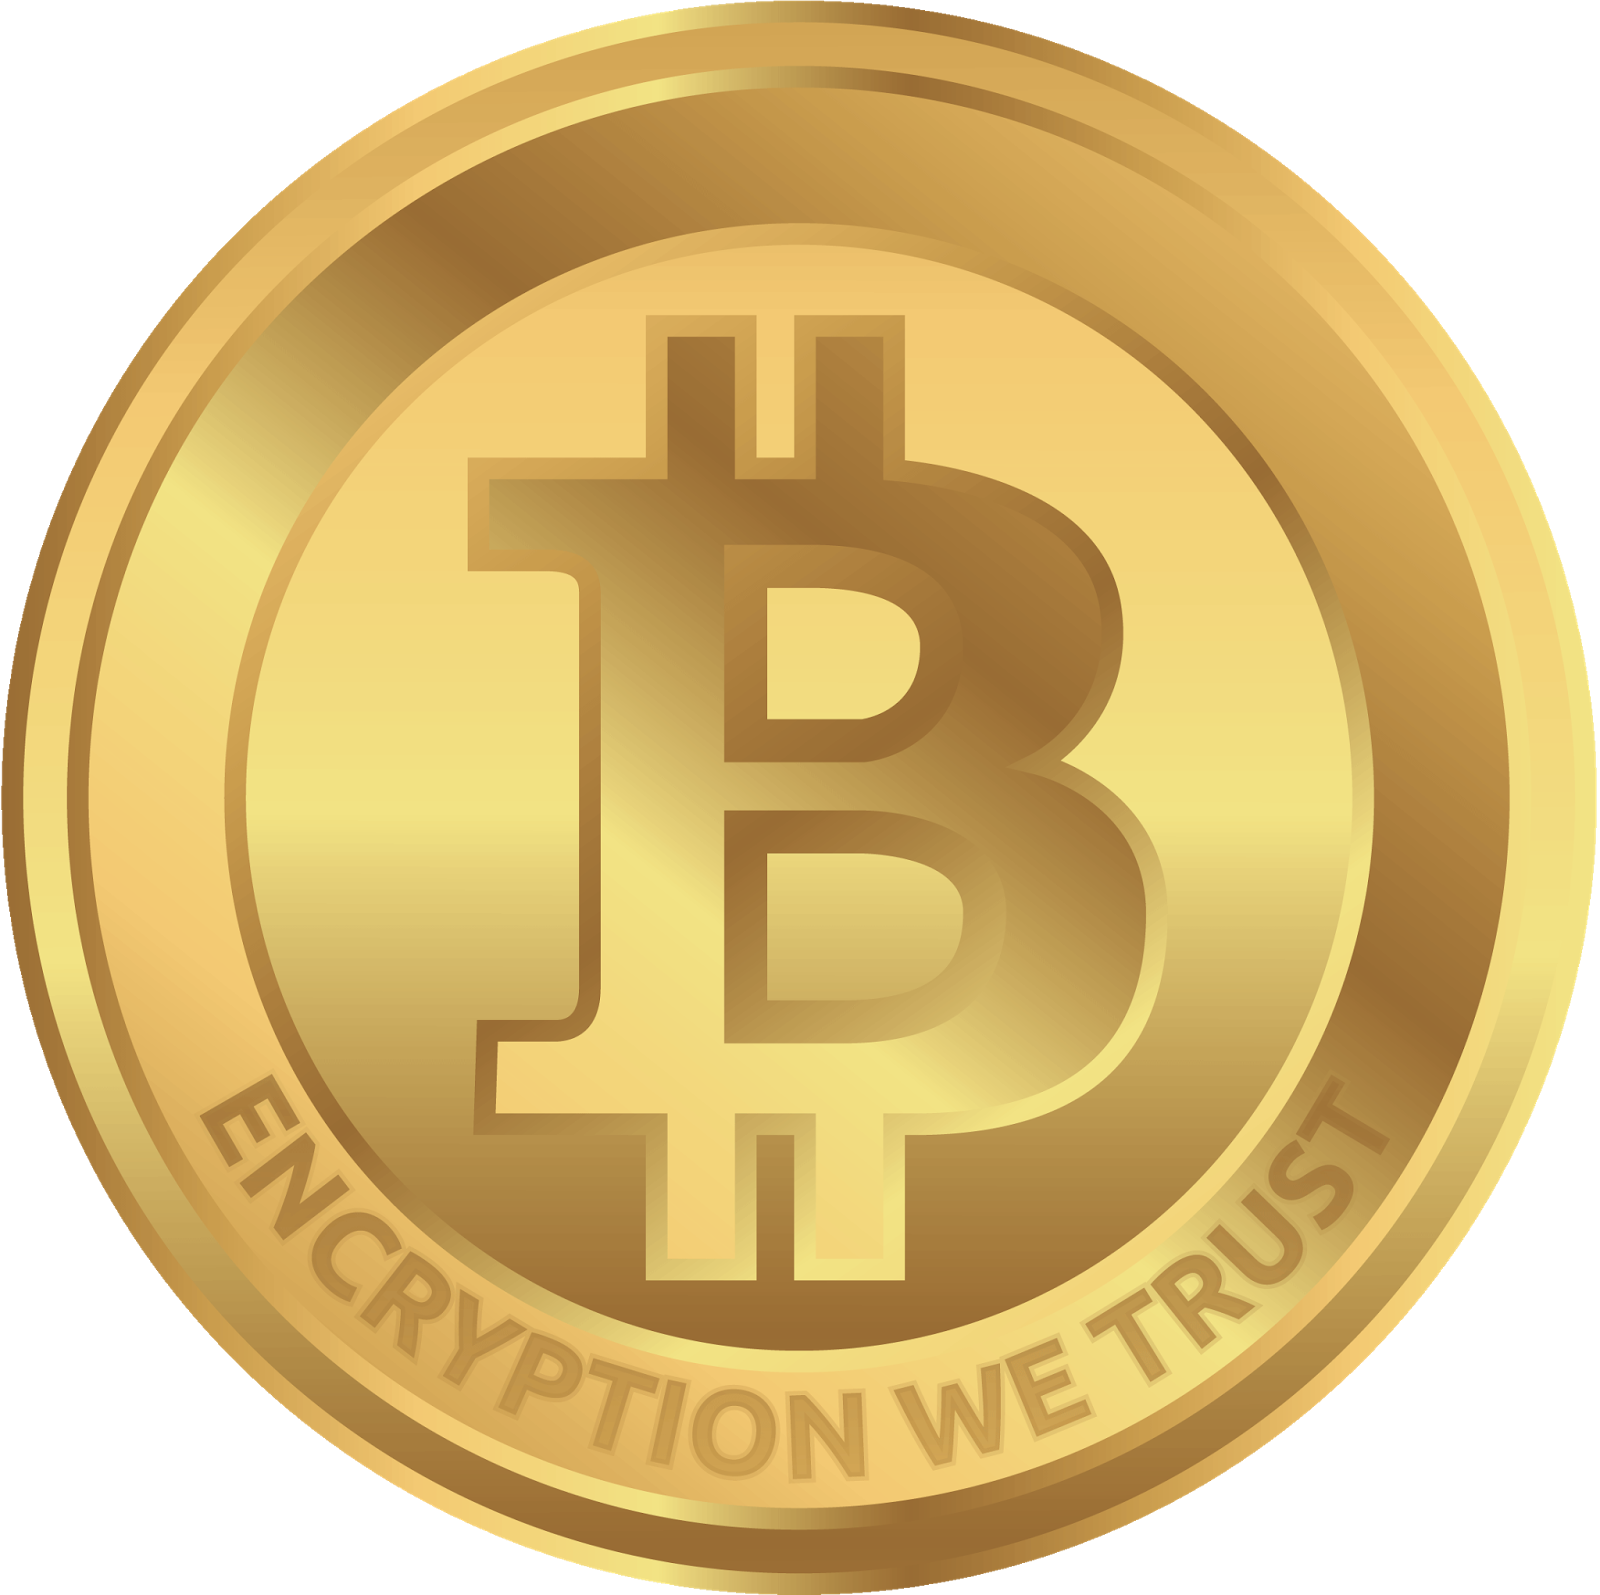 Bitcoin - Encryption We Trust